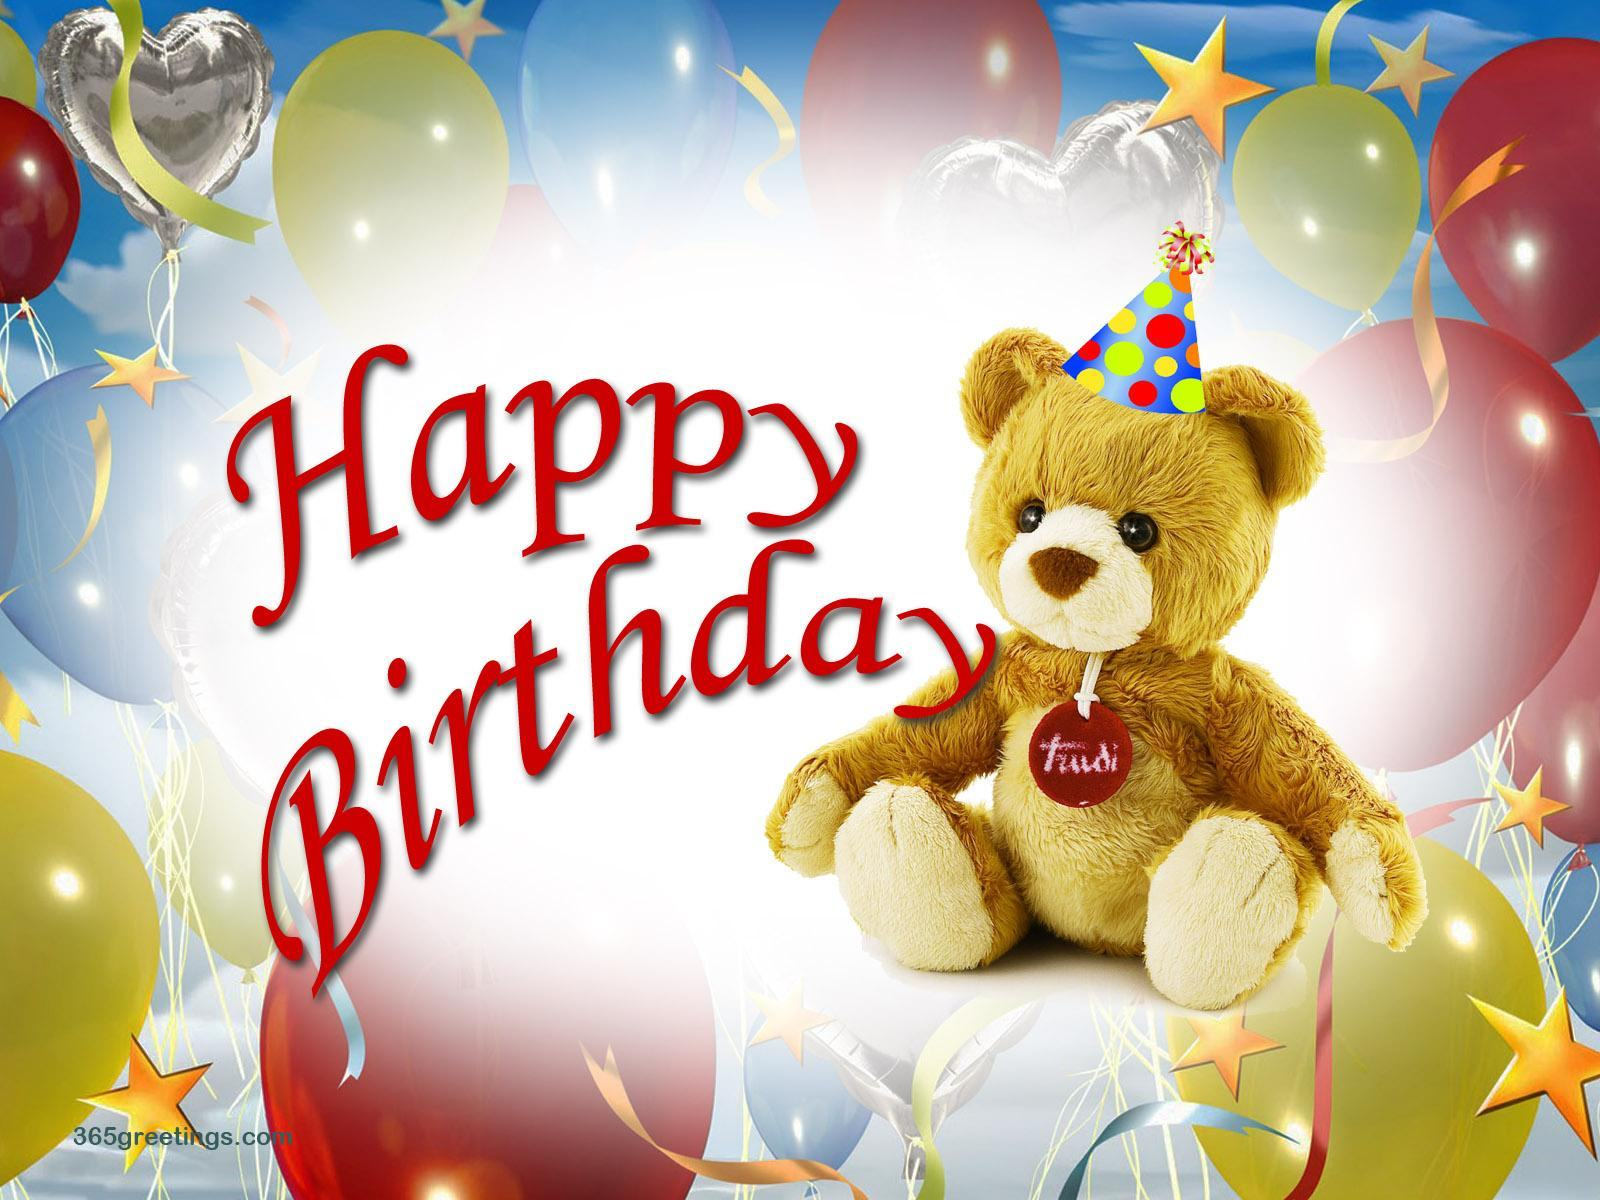 new birthday images free download ; happy-birthday-wallpapers-free-download-12